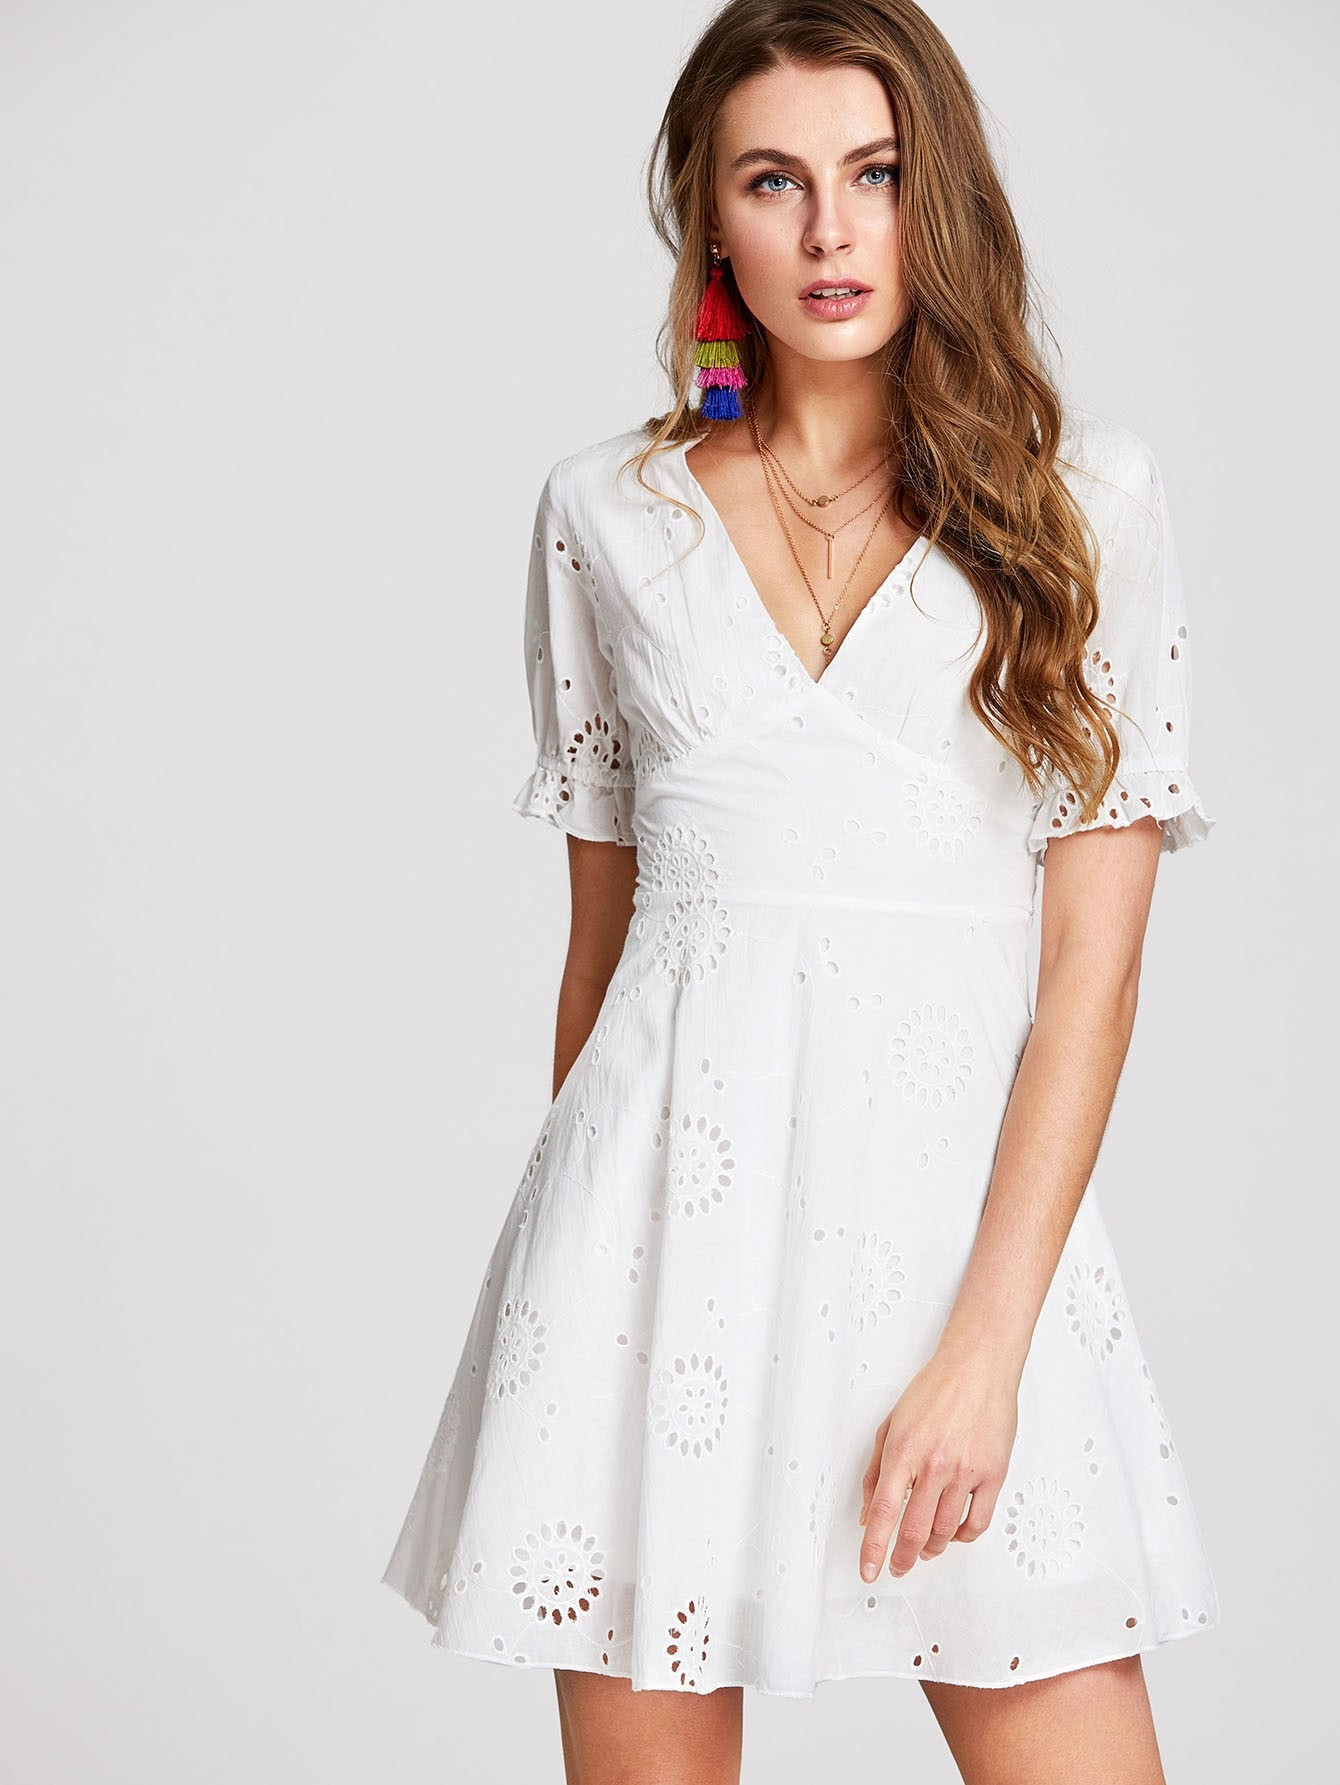 Ruffle Cuff Eyelet Embroidered Dress pearl beading eyelet embroidered cuff tiered dress